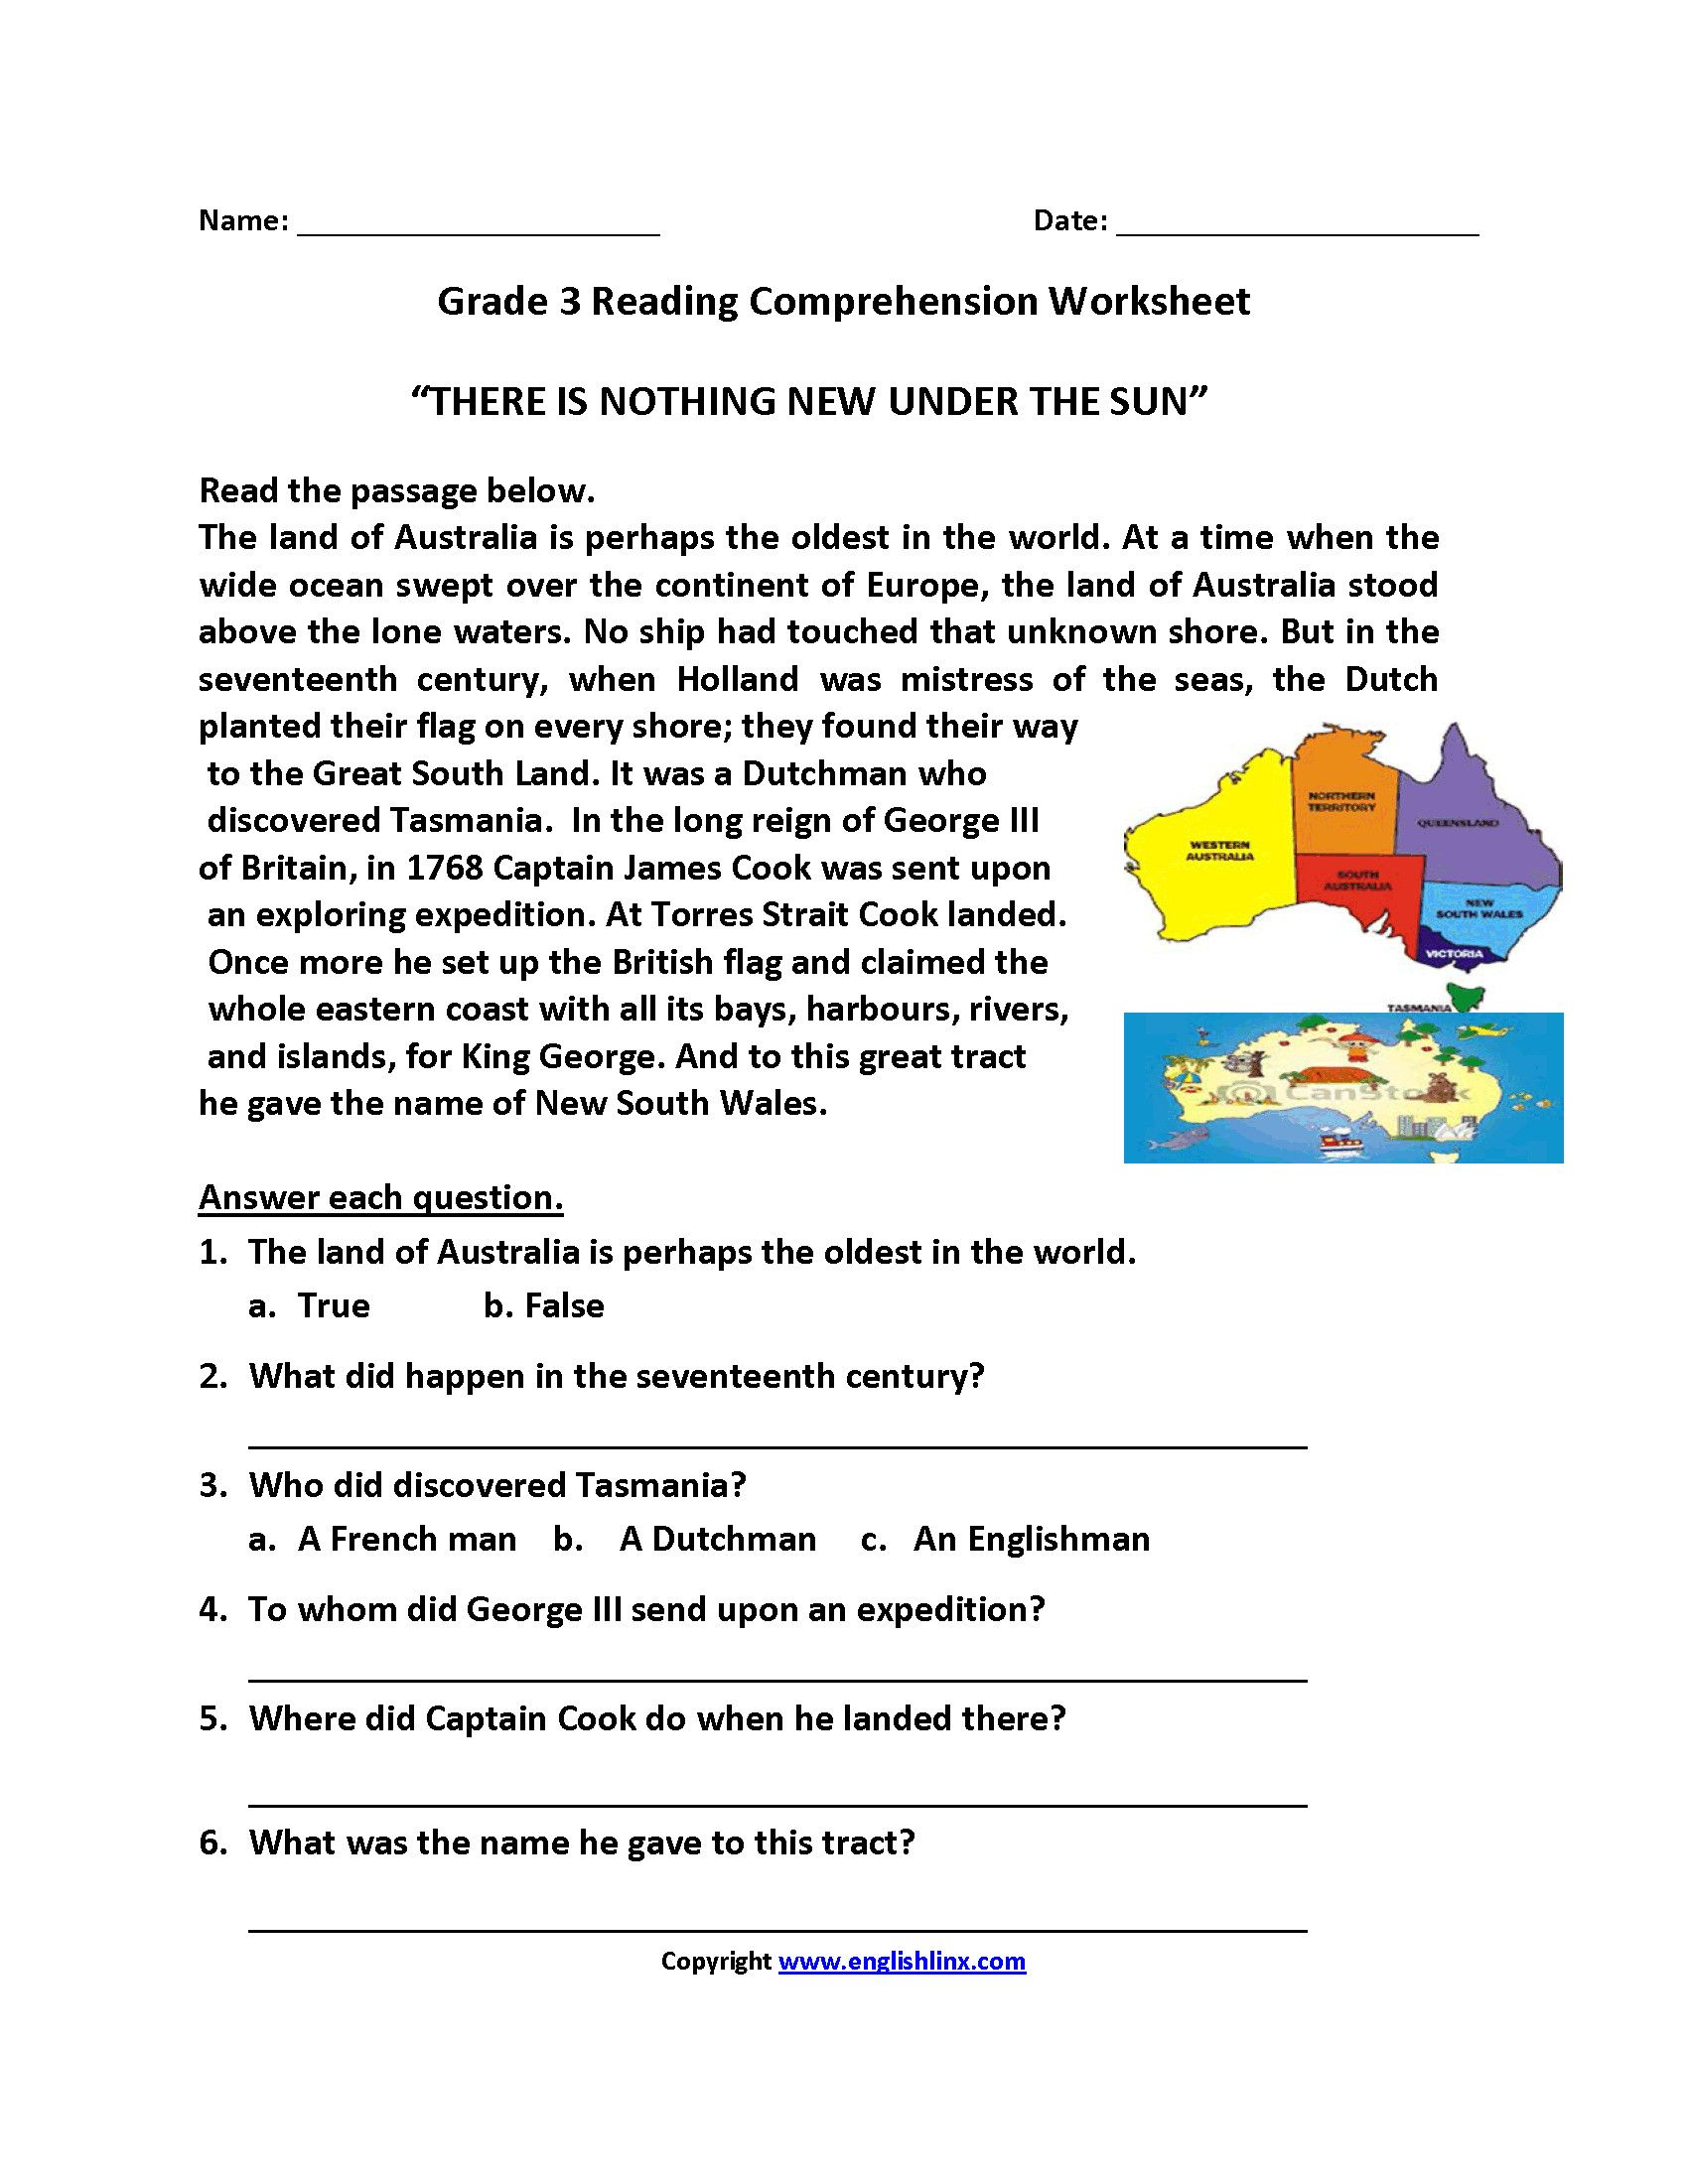 2 5th Grade Reading Comprehension Worksheets With Questions Nothing New Under Su 4th Grade Reading Worksheets Third Grade Reading Worksheets Reading Worksheets Reading comprehension exercises grade 5